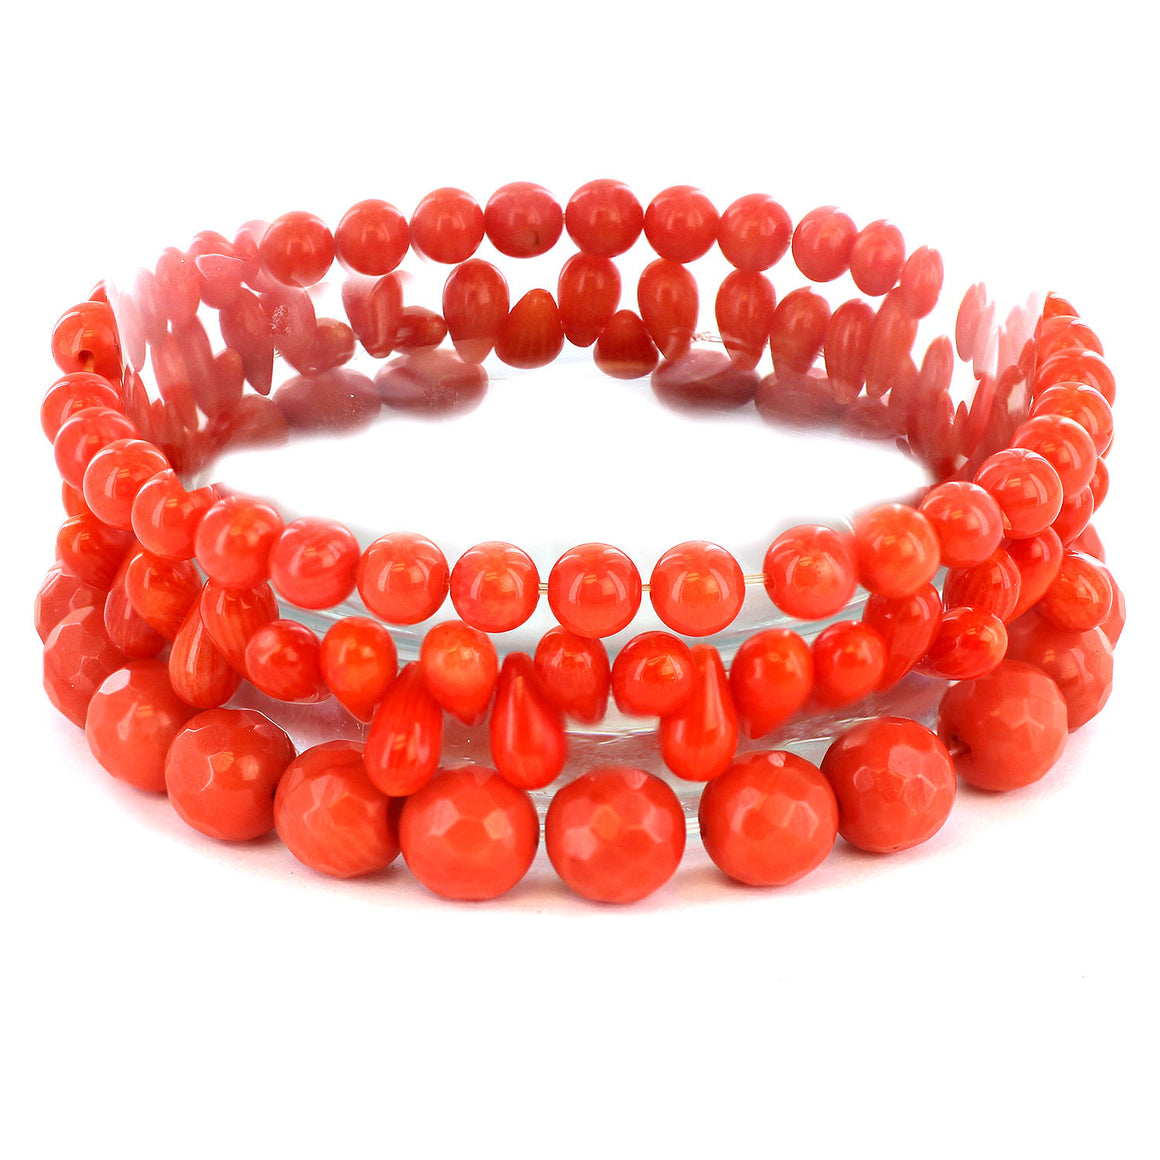 Women's Dyed Orange Coral Beaded and Multi-faceted Bracelets (Set of 3)